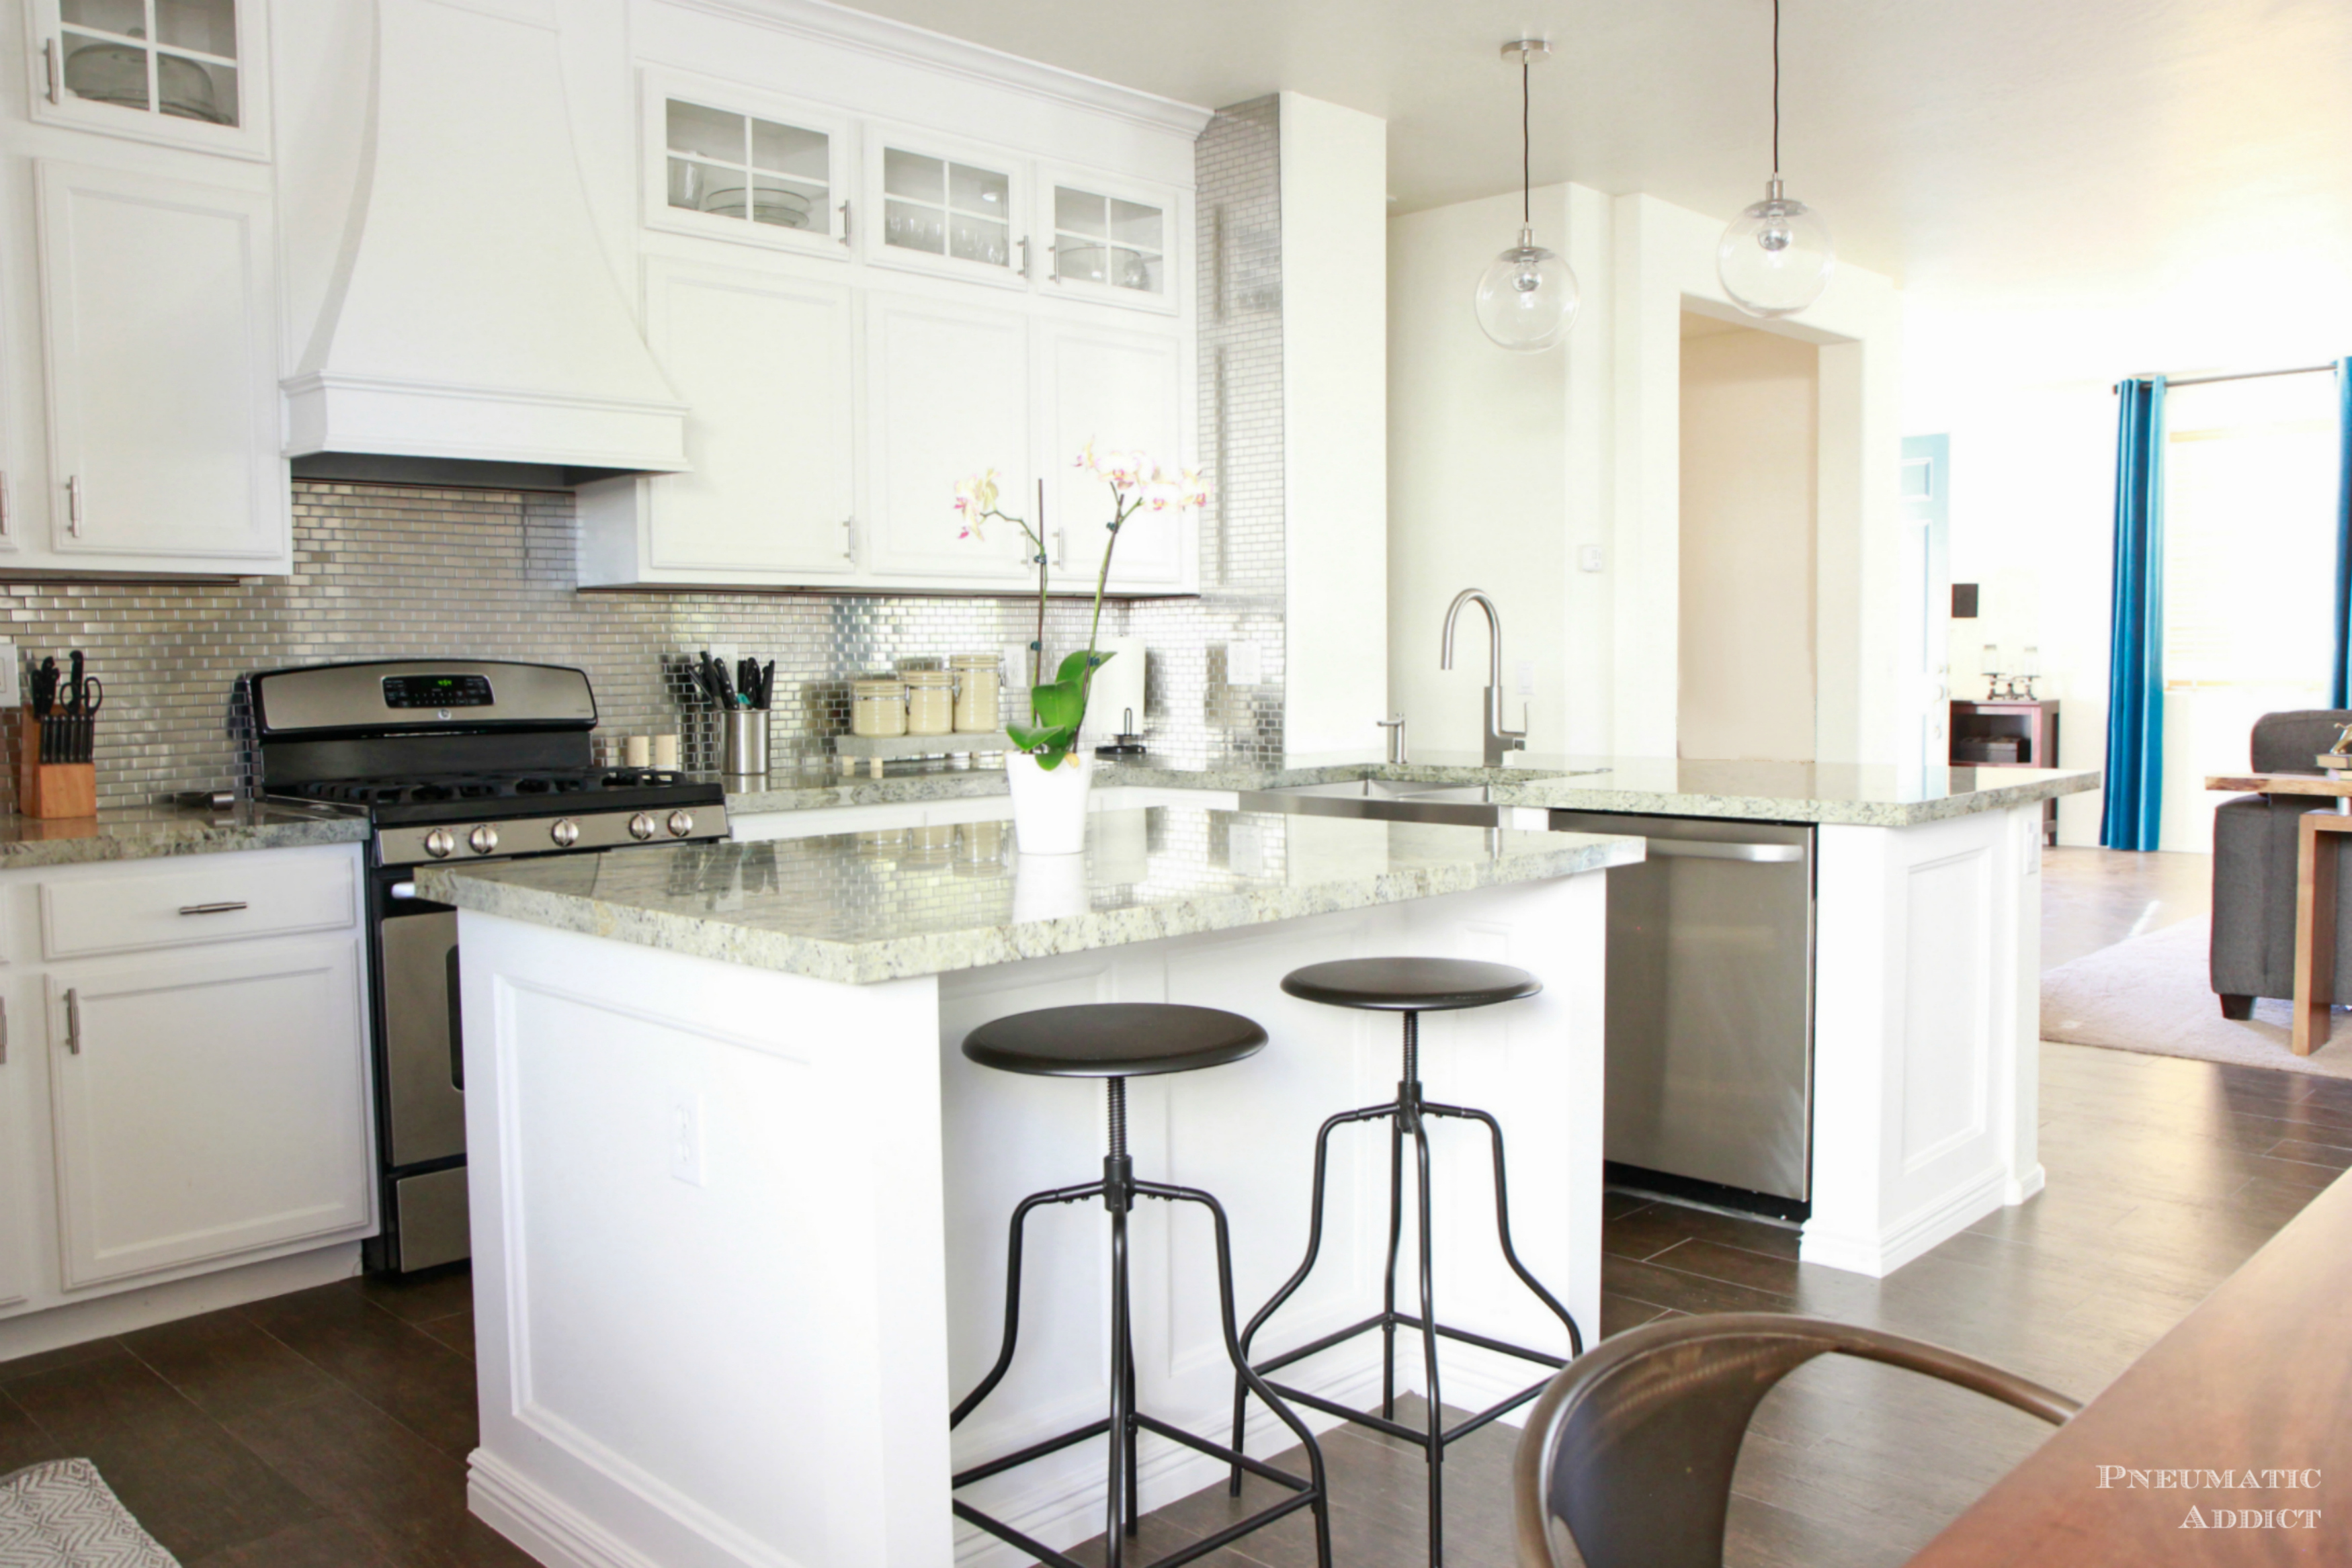 White kitchen cabinets be equipped corner wall cabinet be ...